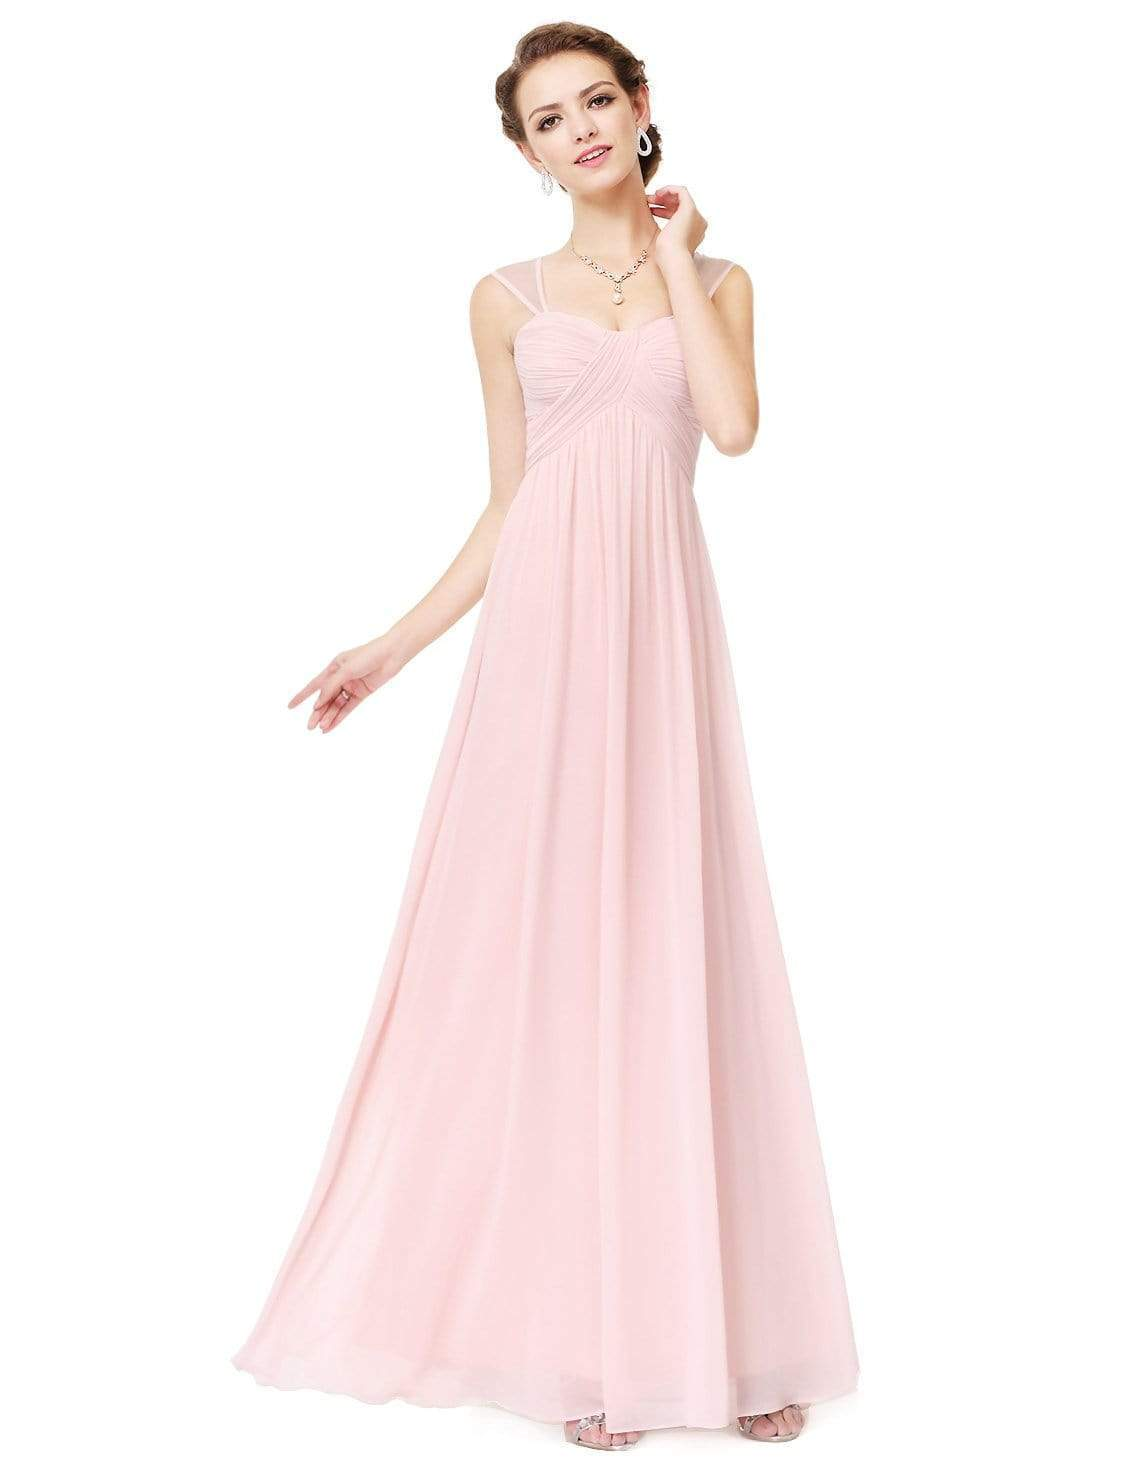 918ba97be02f Elegant Long Chiffon Bridesmaid Dress with Corset Back |Ever-Pretty ...